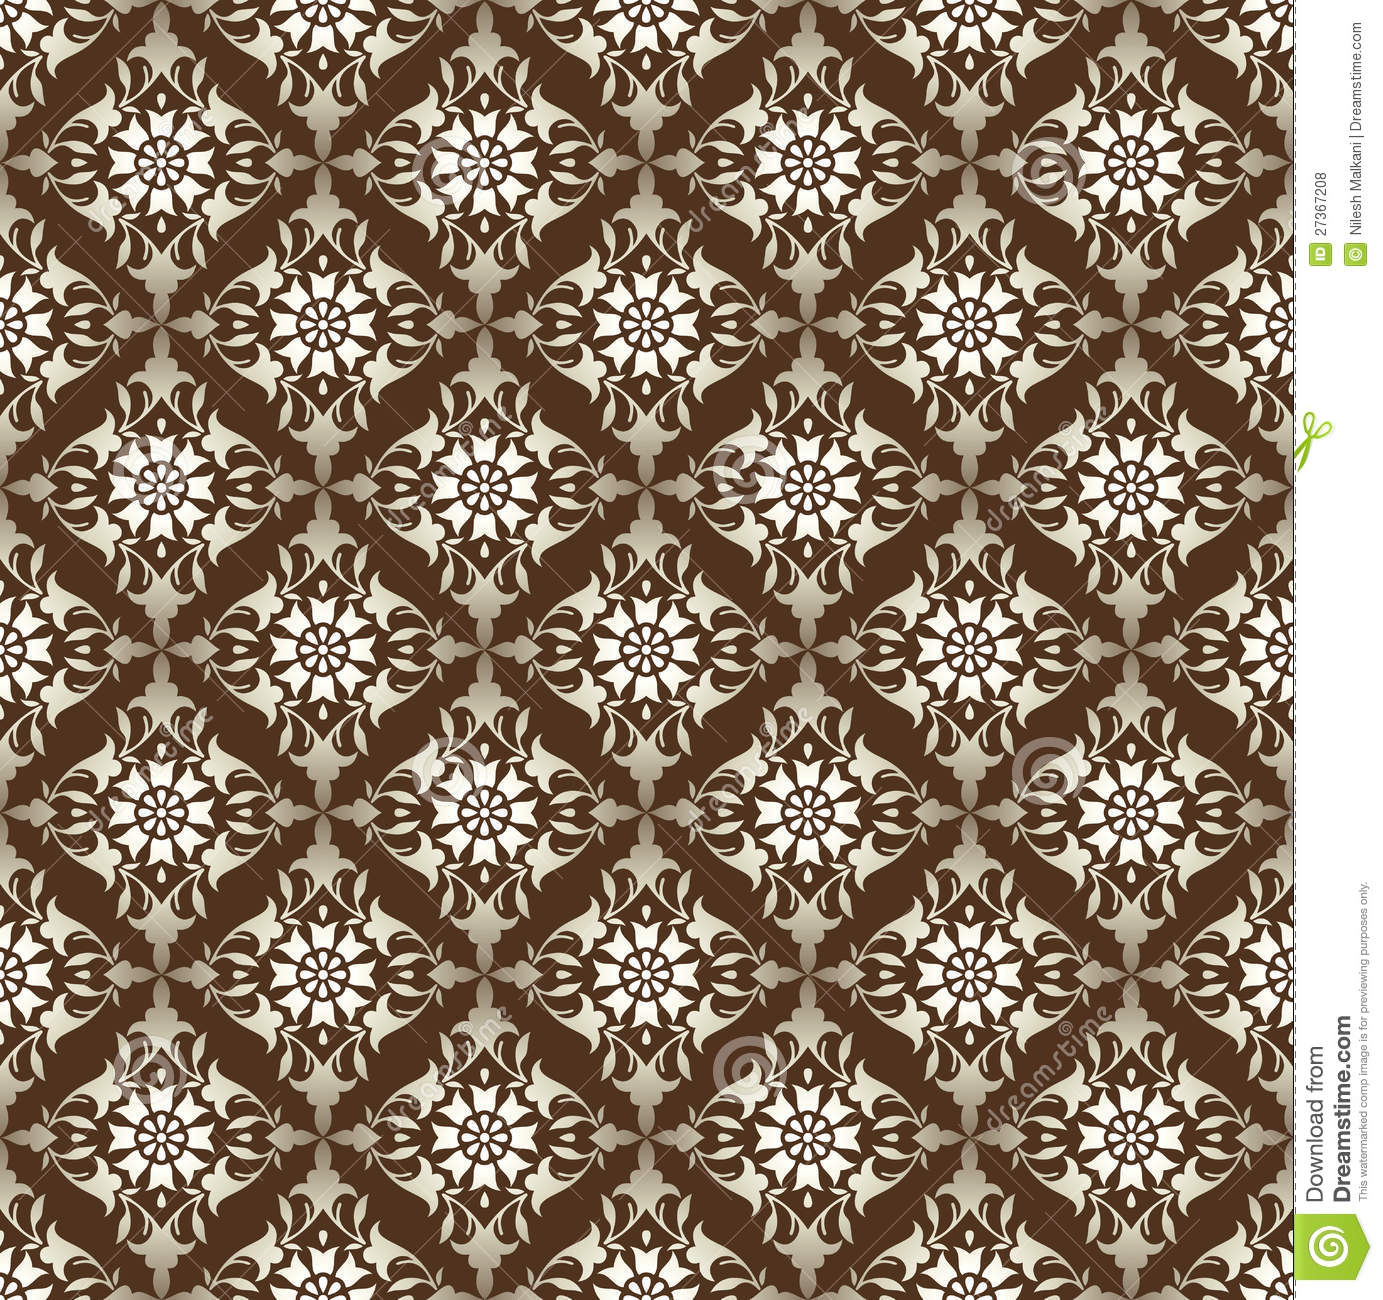 Seamless antique look vector wallpaper in brown shade.